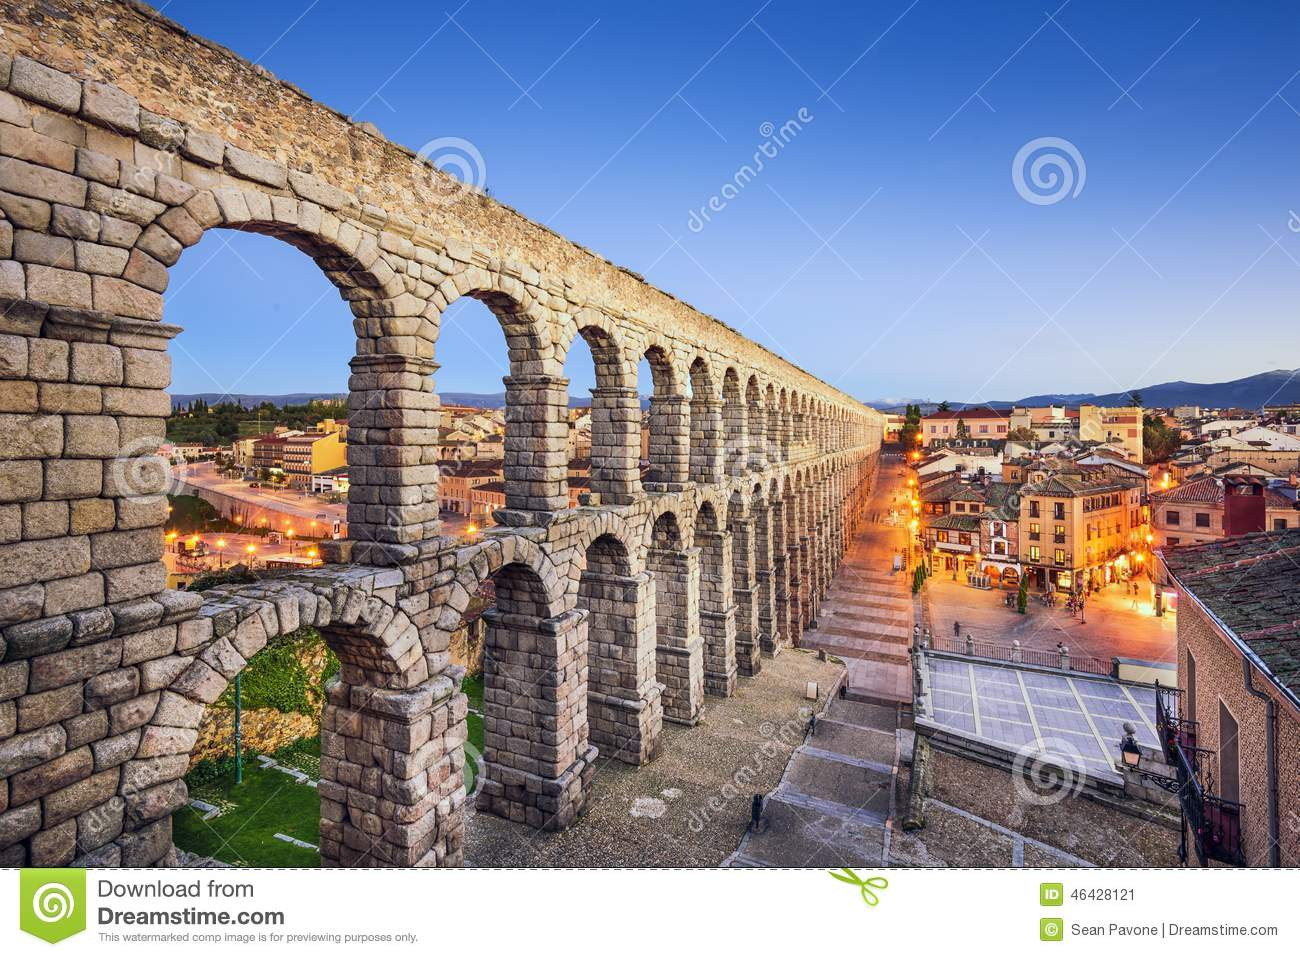 Download Segovia, Spain Aqueduct stock image. Image of townscape - 46428121